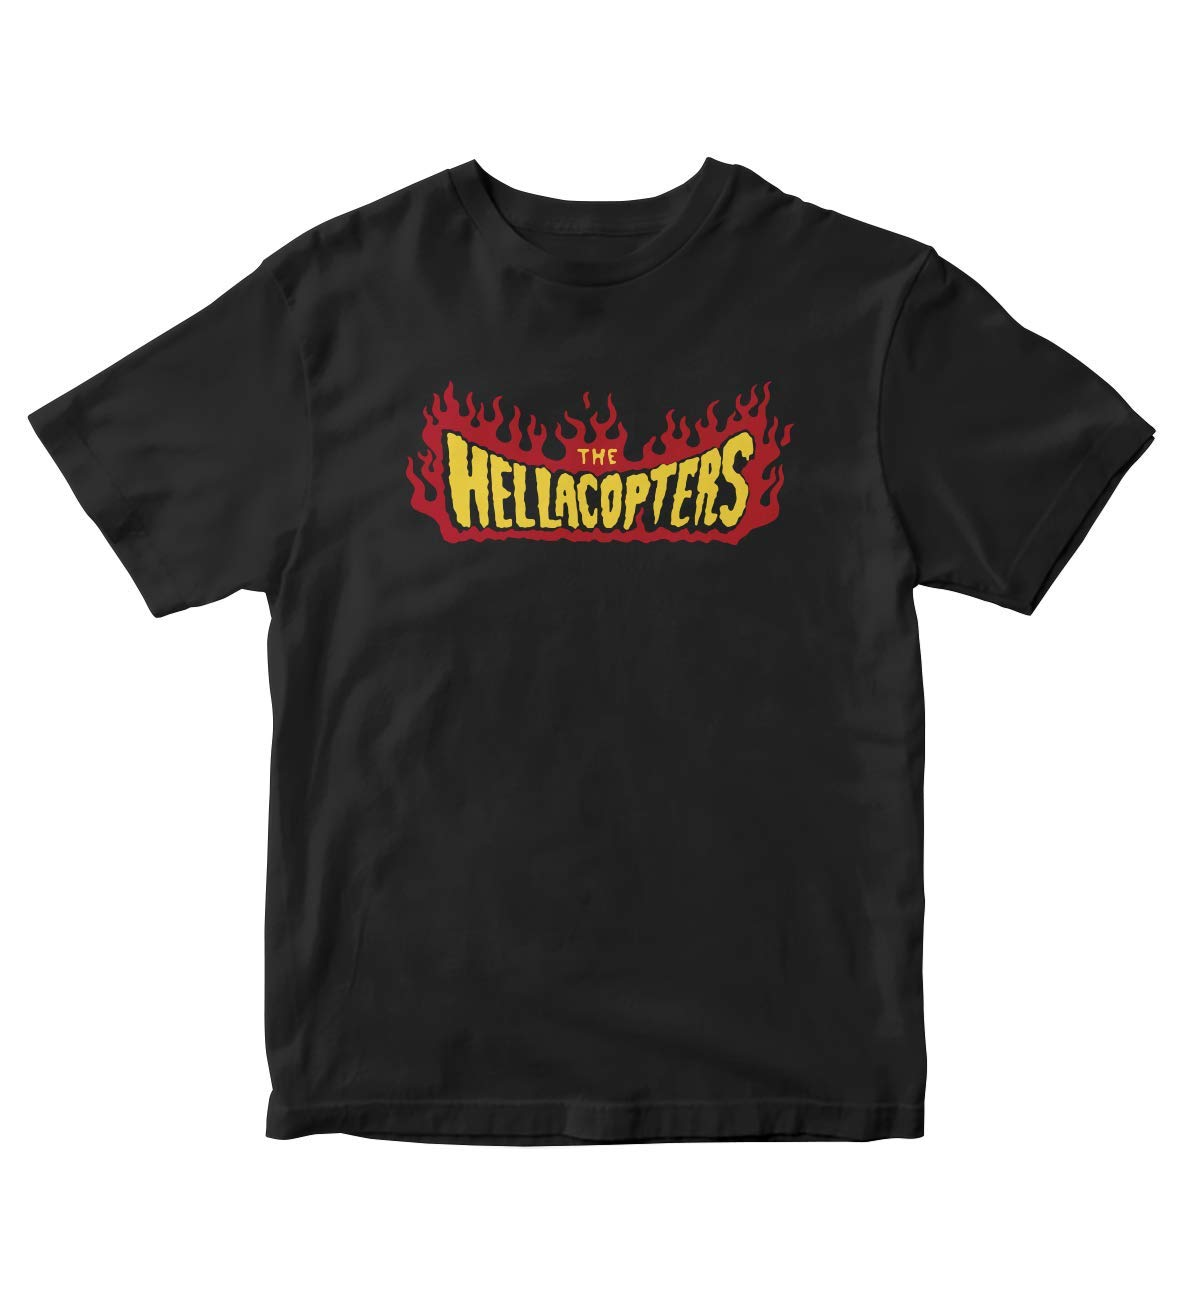 Tjsports The Hellacopters Band Black Shirt S Music 129